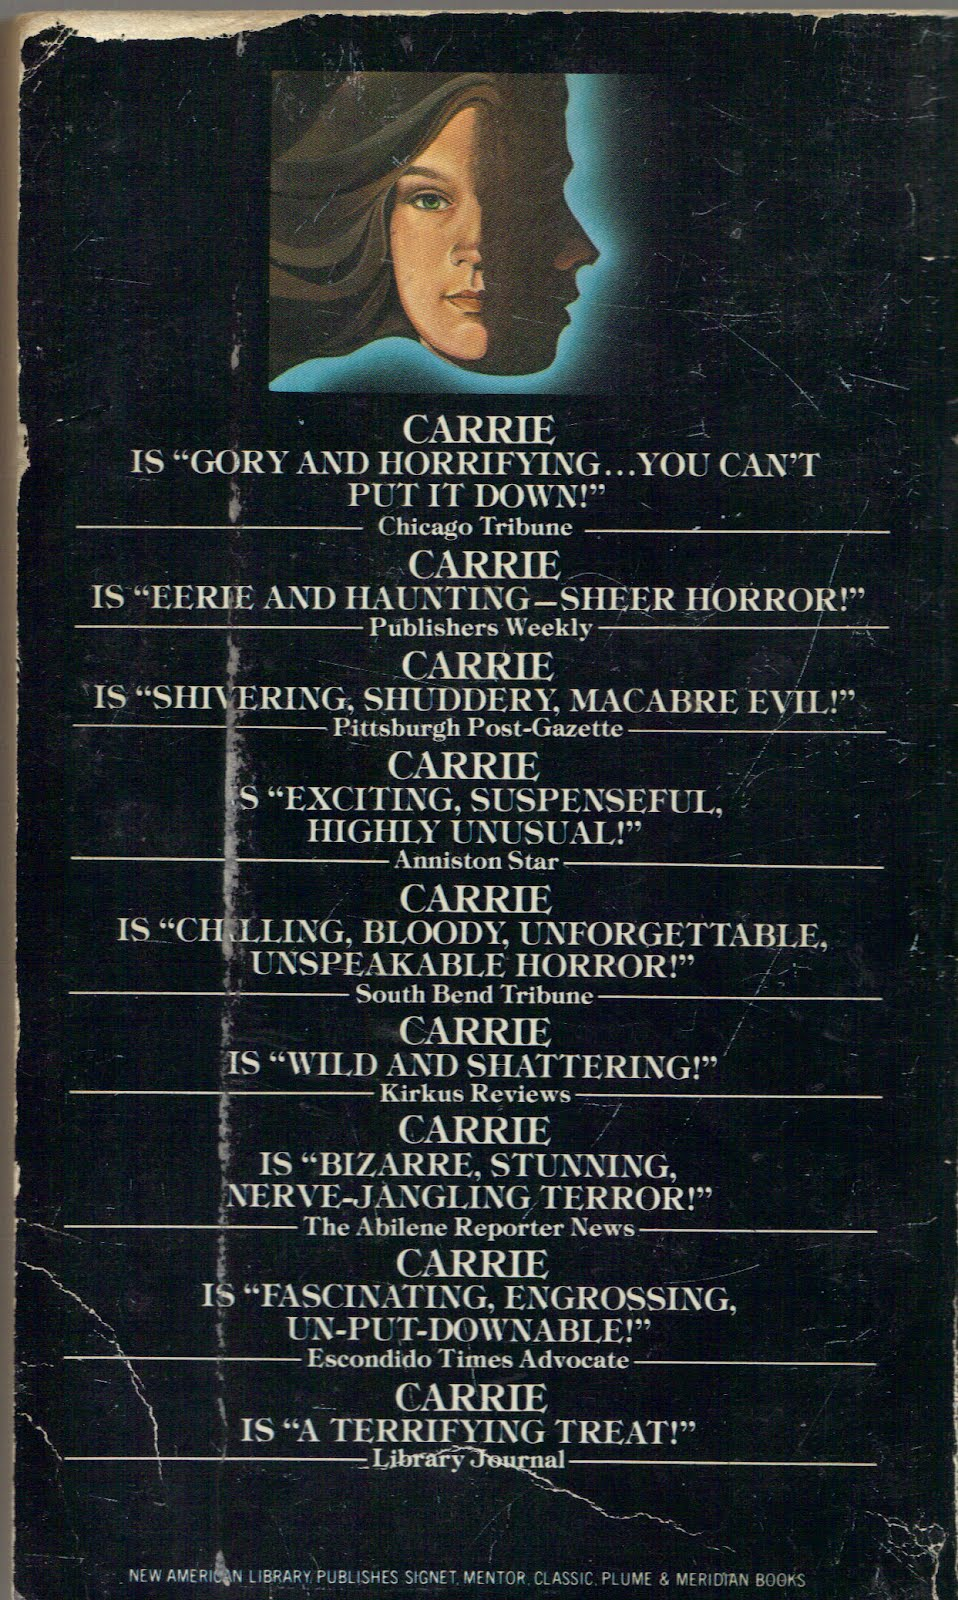 a comparison of the novels carrie by stephen king and in stir of echoes by richard matheson Essays related to stephen king's carrie: theme 1  the adaptation offended me, personally, because the novel is one of my favorite novels by stephen king.